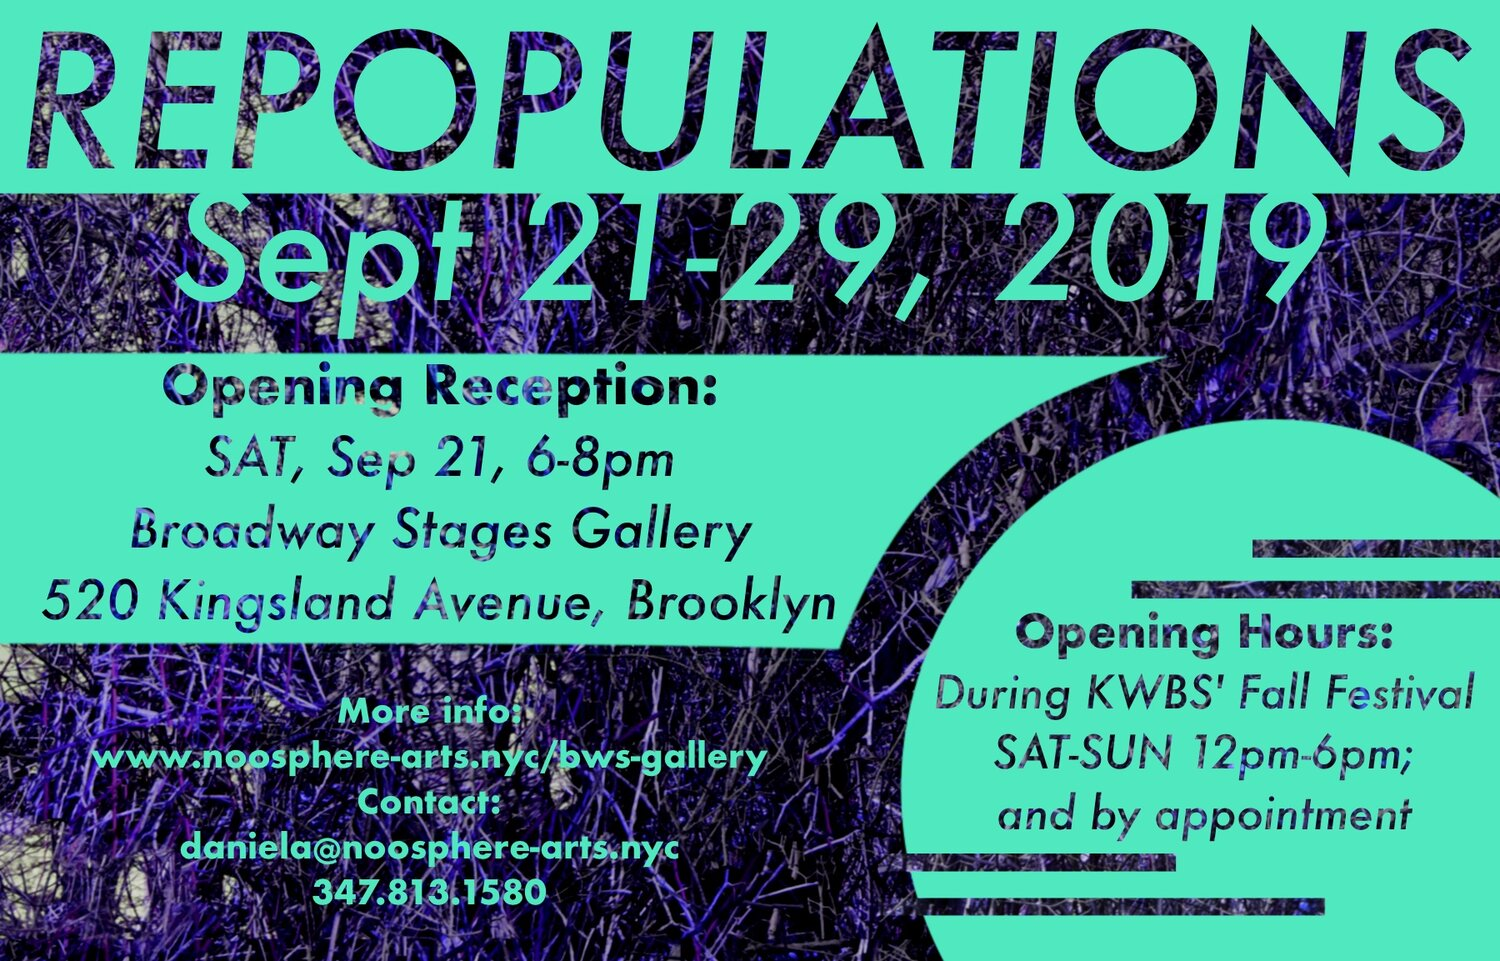 NOoSPHERE Arts presents  REPOPULATIONS,  a group exhibition and series of performances opening during  Kingsland Wildflowers' Fall Festival , taking place during Climate Week 2019. Curated by Daniela Holban, the show will feature works by 20+ artists.   REPOPULATIONS  examines the parallels between declining local natural habitats within the Greenpoint landscape: Native plant and wildlife alongside the artists' populations have become depleted over time due to the neglect and contamination of their ecosystems by both industrial and property development. A commentary on a microcosm of a greater global crisis, the exhibition addresses the importance and celebrates the repopulation efforts of these ecosystems in several ways – by presenting a selection of artists working in the area as well as showcasing artworks that comment on environmental themes.  With Works by:  Jon Barraclough, Marijke Brinkhof, Juliet Jane, Maki Kaoru, Aomi Kikuchi, Sol Kjok, Tom Koken, Sjaak Kooij, Ofra Lapid, Till Lauer, Allison Maletz, Julianne Nash, Agata Nowicka,   Brian Rattiner, Beau Bree Rhee, Noam Shoan, Asia Sztencel, Adriano Valeri, Ingvild Waerhaug, Martynka Wawrzyniak, Albin Wiberg, Alex Wolkowicz and Gabriel Zimmer.   Special multi-media performance with  Ingvild Waerhaug  on vocals and  Art Baron  on bass recorder & trombone on Sept.21st at 6:30PM.